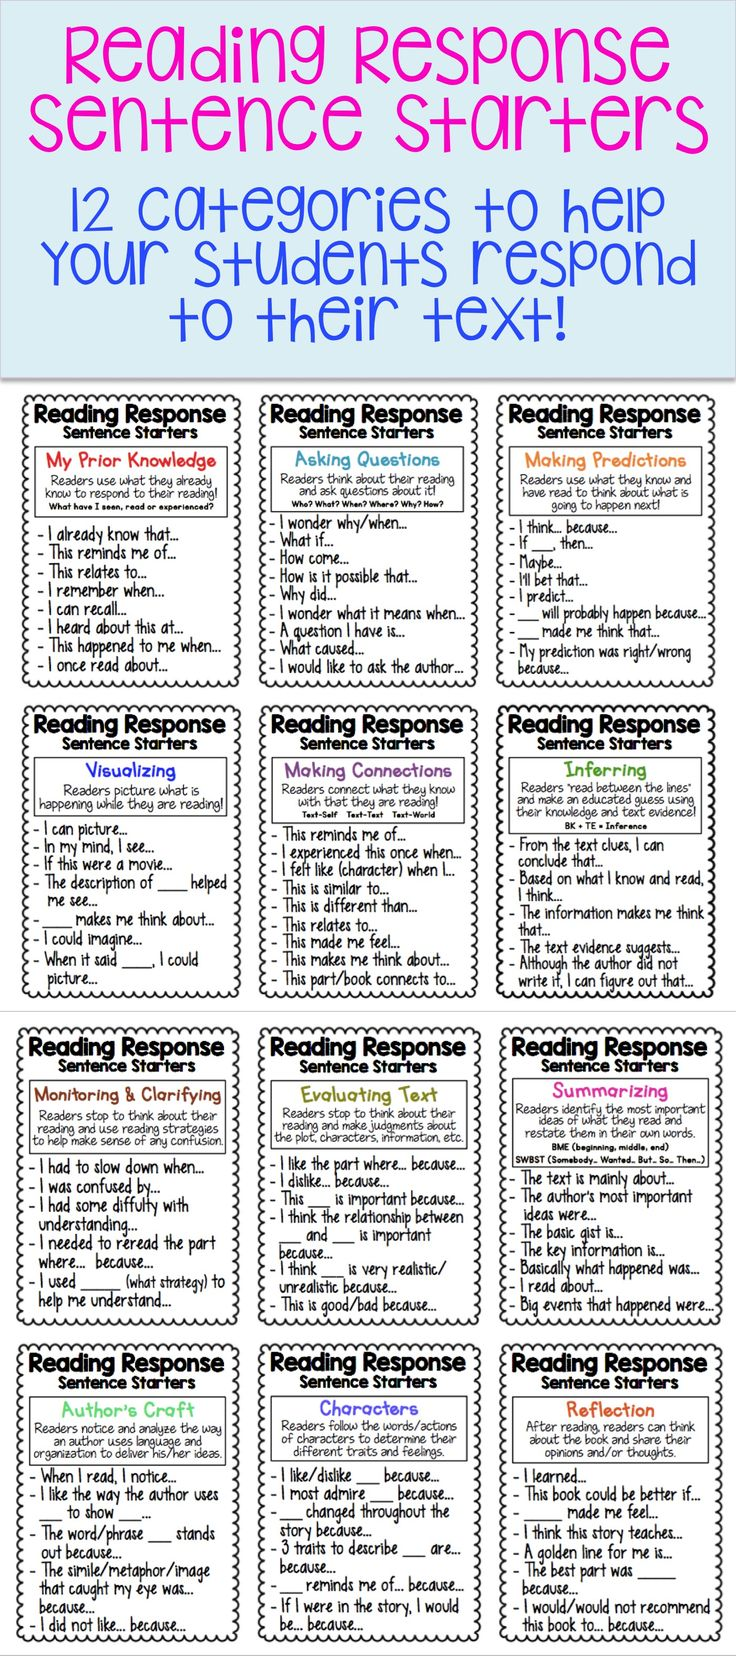 best ideas about sentence starters essay writing over 80 sentence starters among 12 different categories perfect for reading response journals includes